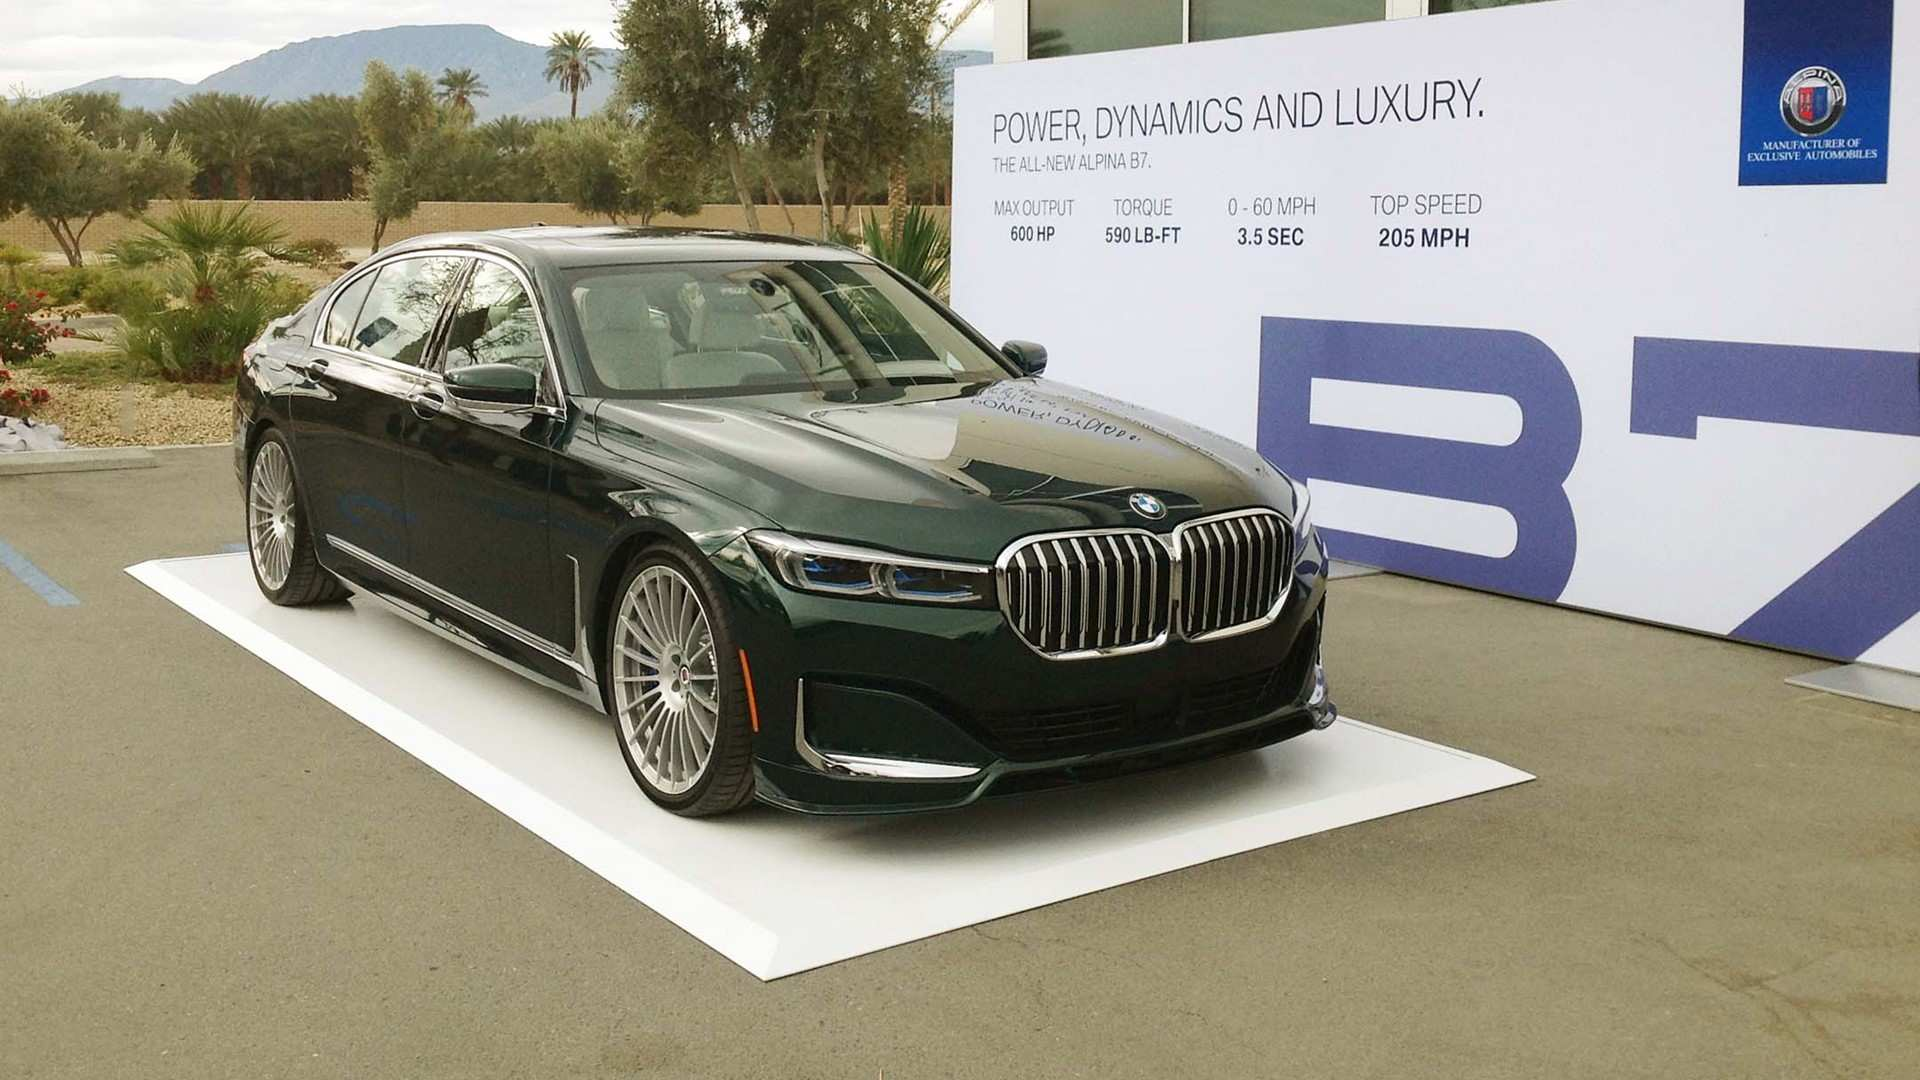 27 All New BMW Alpina 2020 Redesign and Concept for BMW Alpina 2020